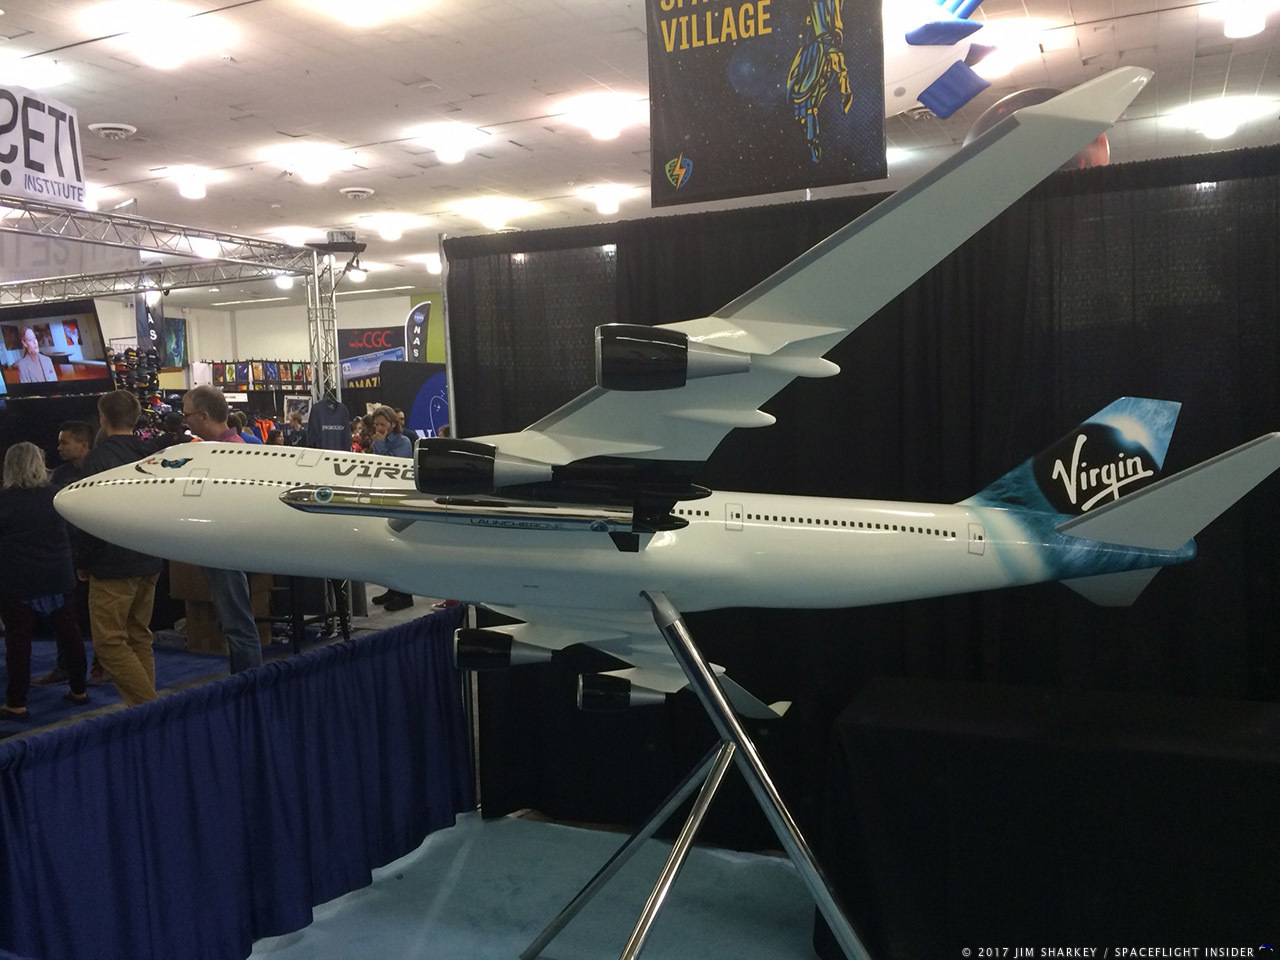 "Model of Virgin Galactic 747-400 ""Cosmic Girl"" carrying 2-stage LauncherOne rocket. Photo Credit: Jim Sharkey/SpaceFlight Insider"